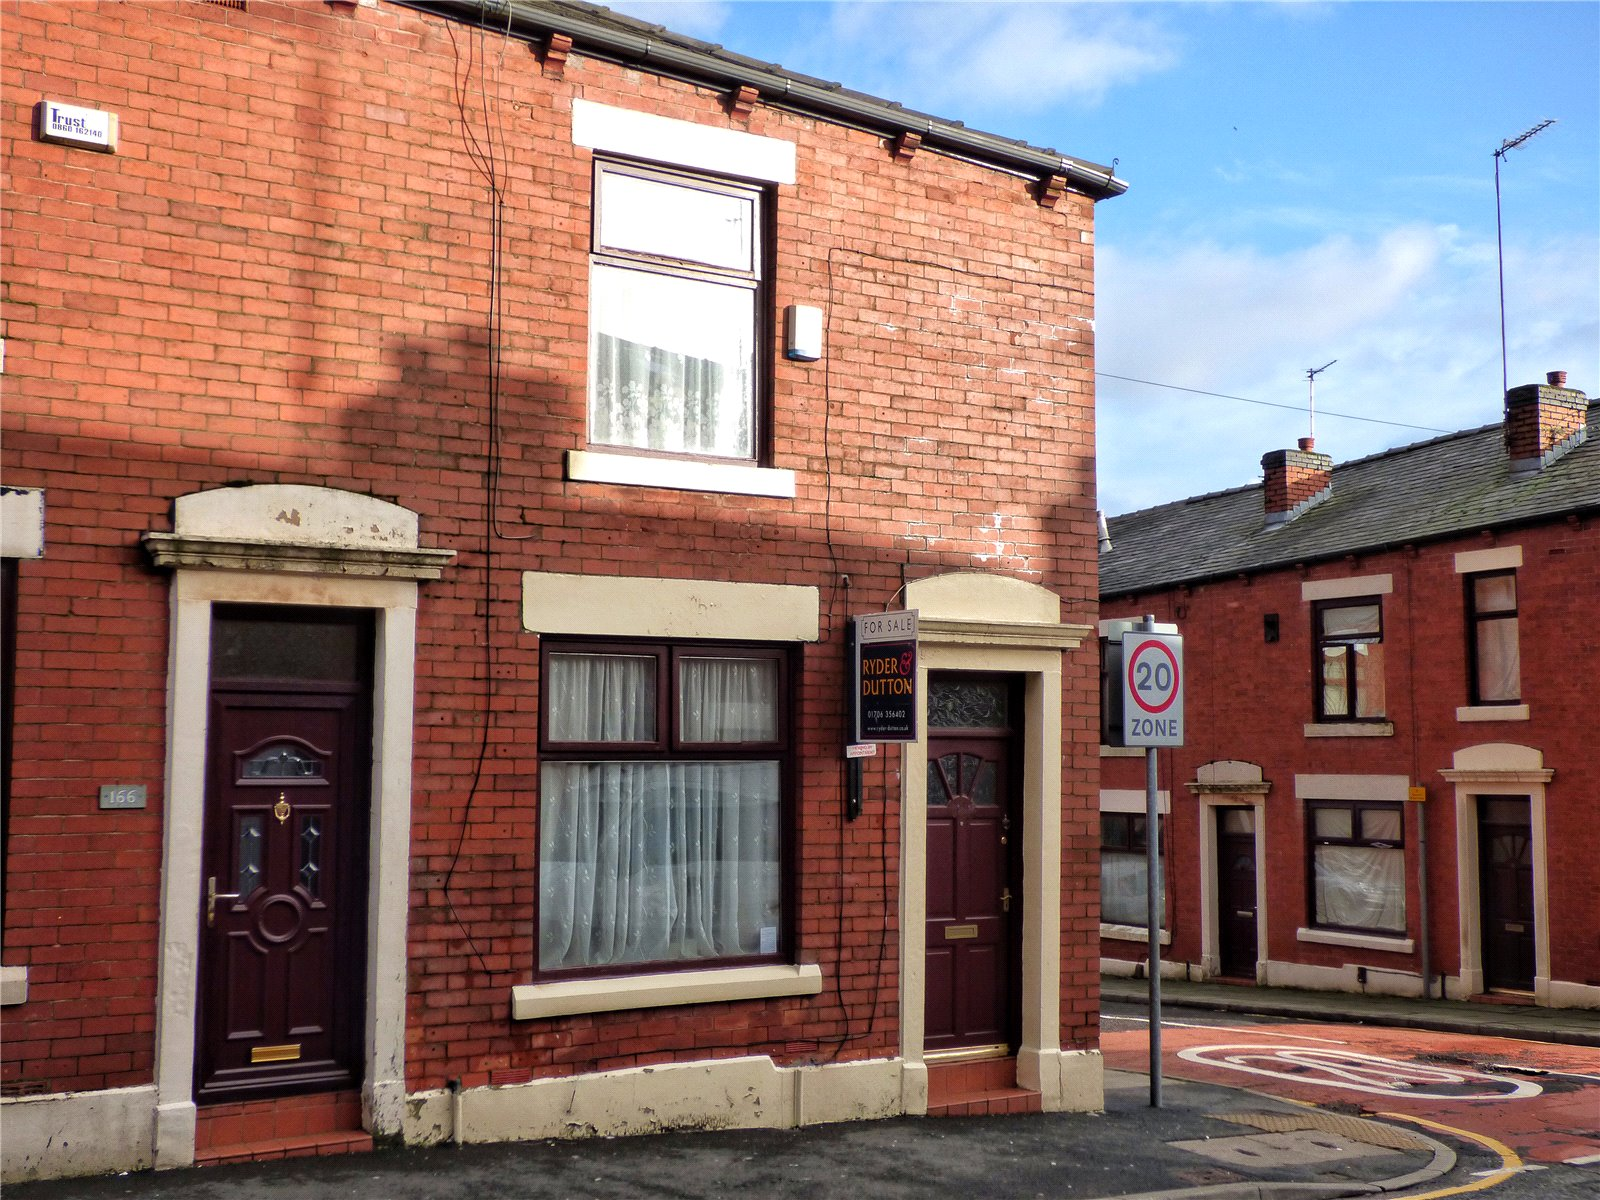 2 Bedrooms End Of Terrace House for sale in Whitehall Street, Rochdale, Greater Manchester, OL12